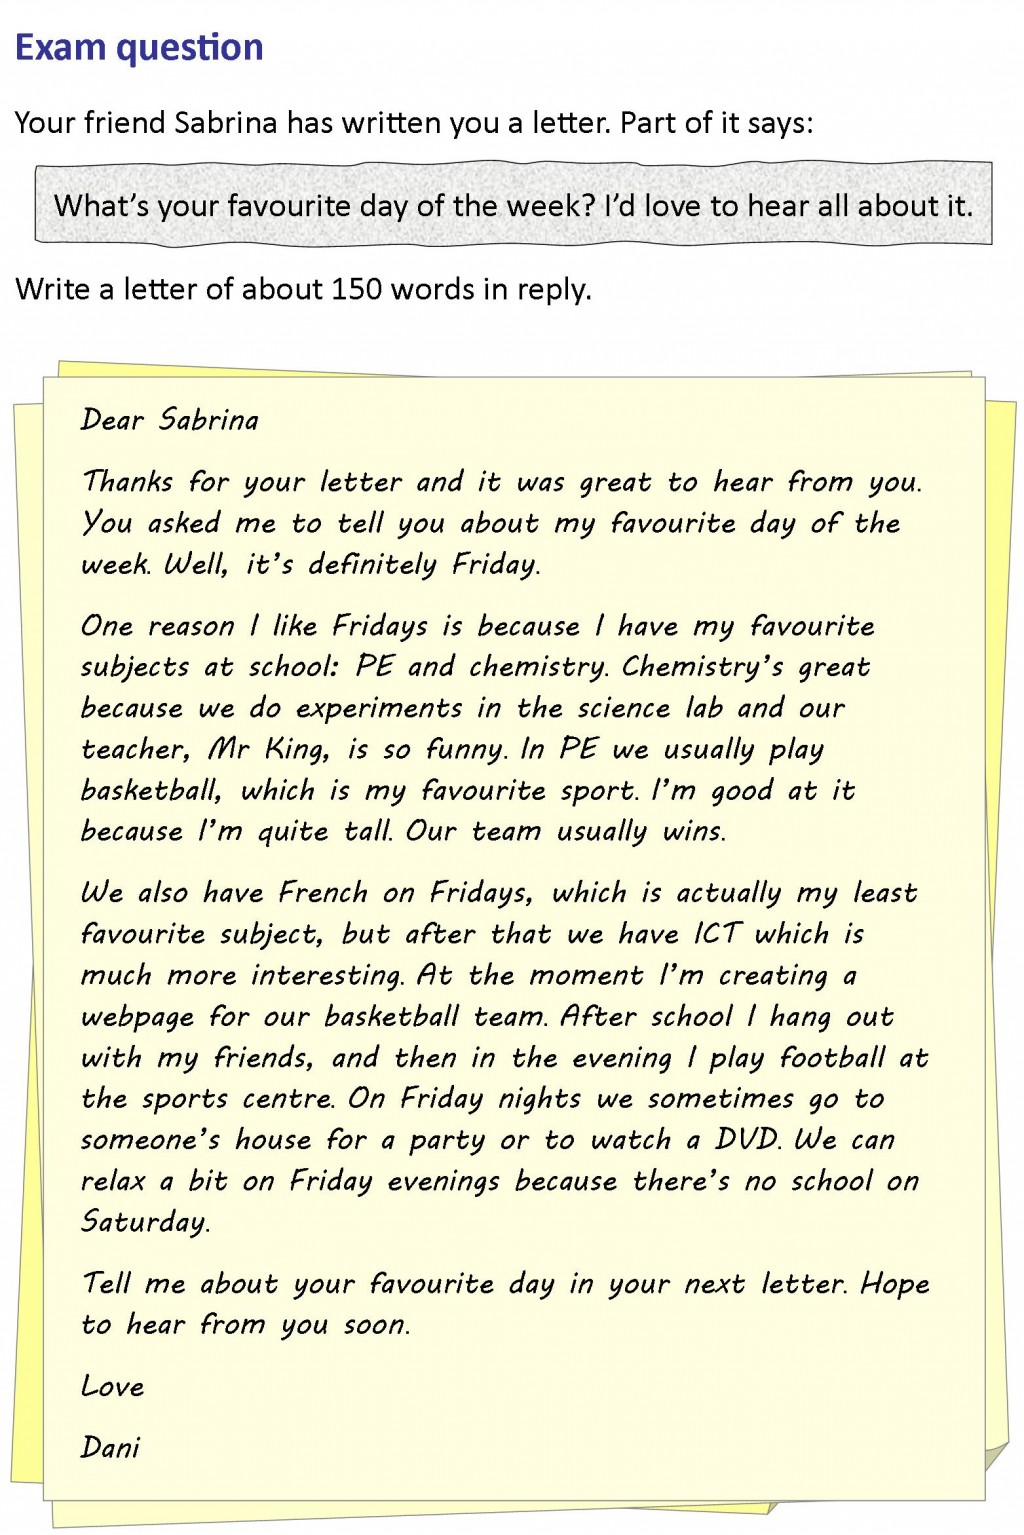 001 Essay Example Letter To A Friend Writing On Examination Rare Day Large